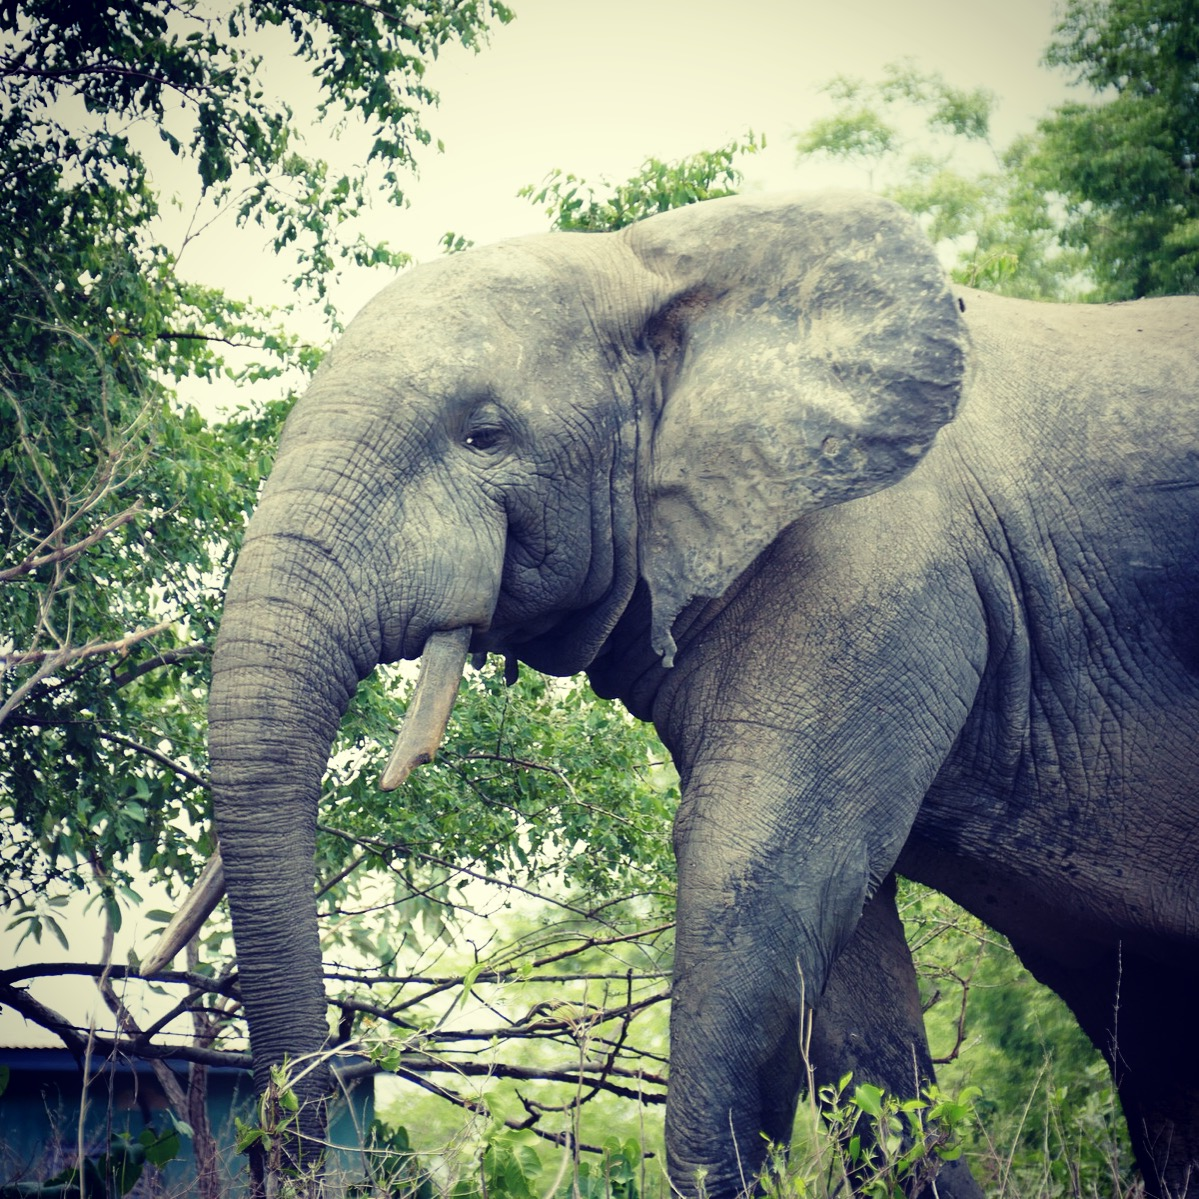 A large elephant approaches the hotel restaurant at Mole National Park. Noah Strycker